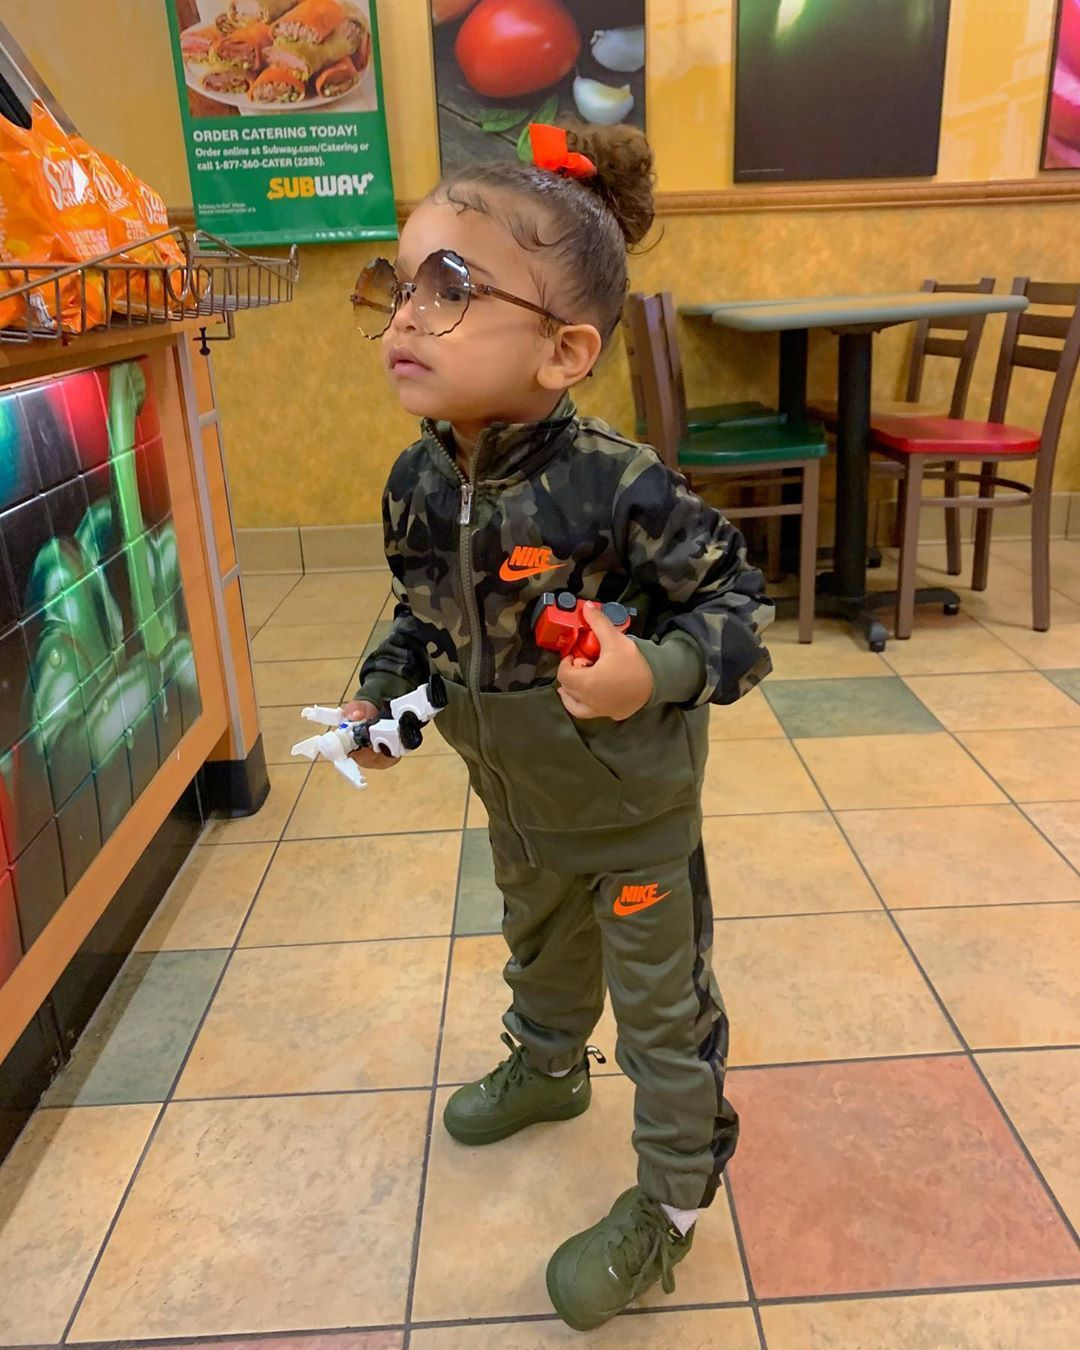 "Official London Marie Rose 👑 on Instagram: ""We love @subway ❤️ so yummy—— Sunglasses: @vipkids___  Outfit: @macys @nike  Shoes: @kidsfootlocker"""